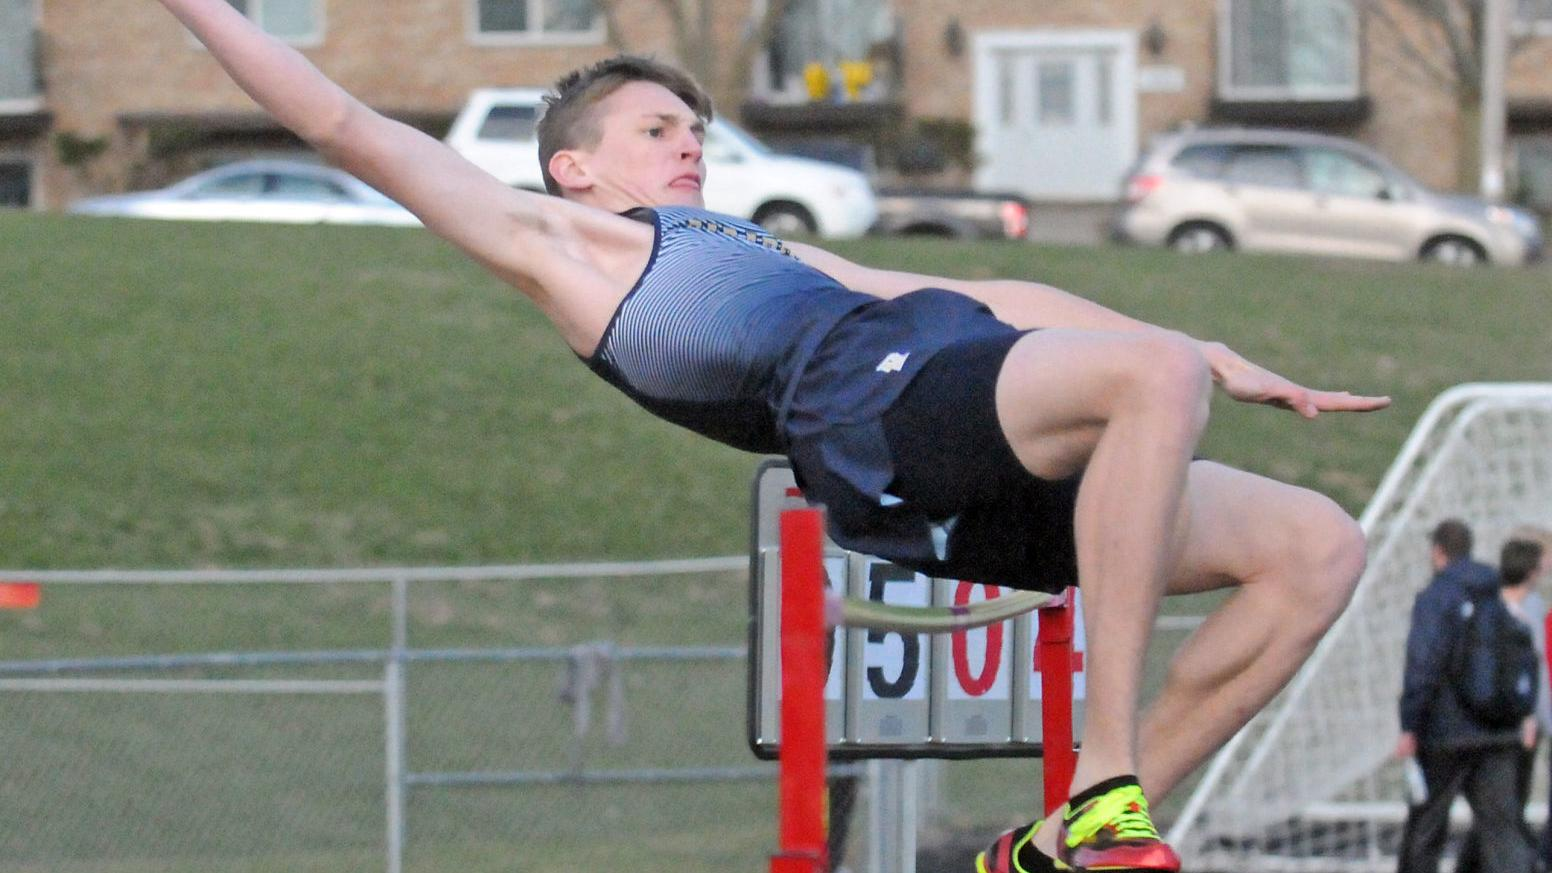 PREP TRACK AND FIELD: Baraboo boys take fourth at Watertown Invite